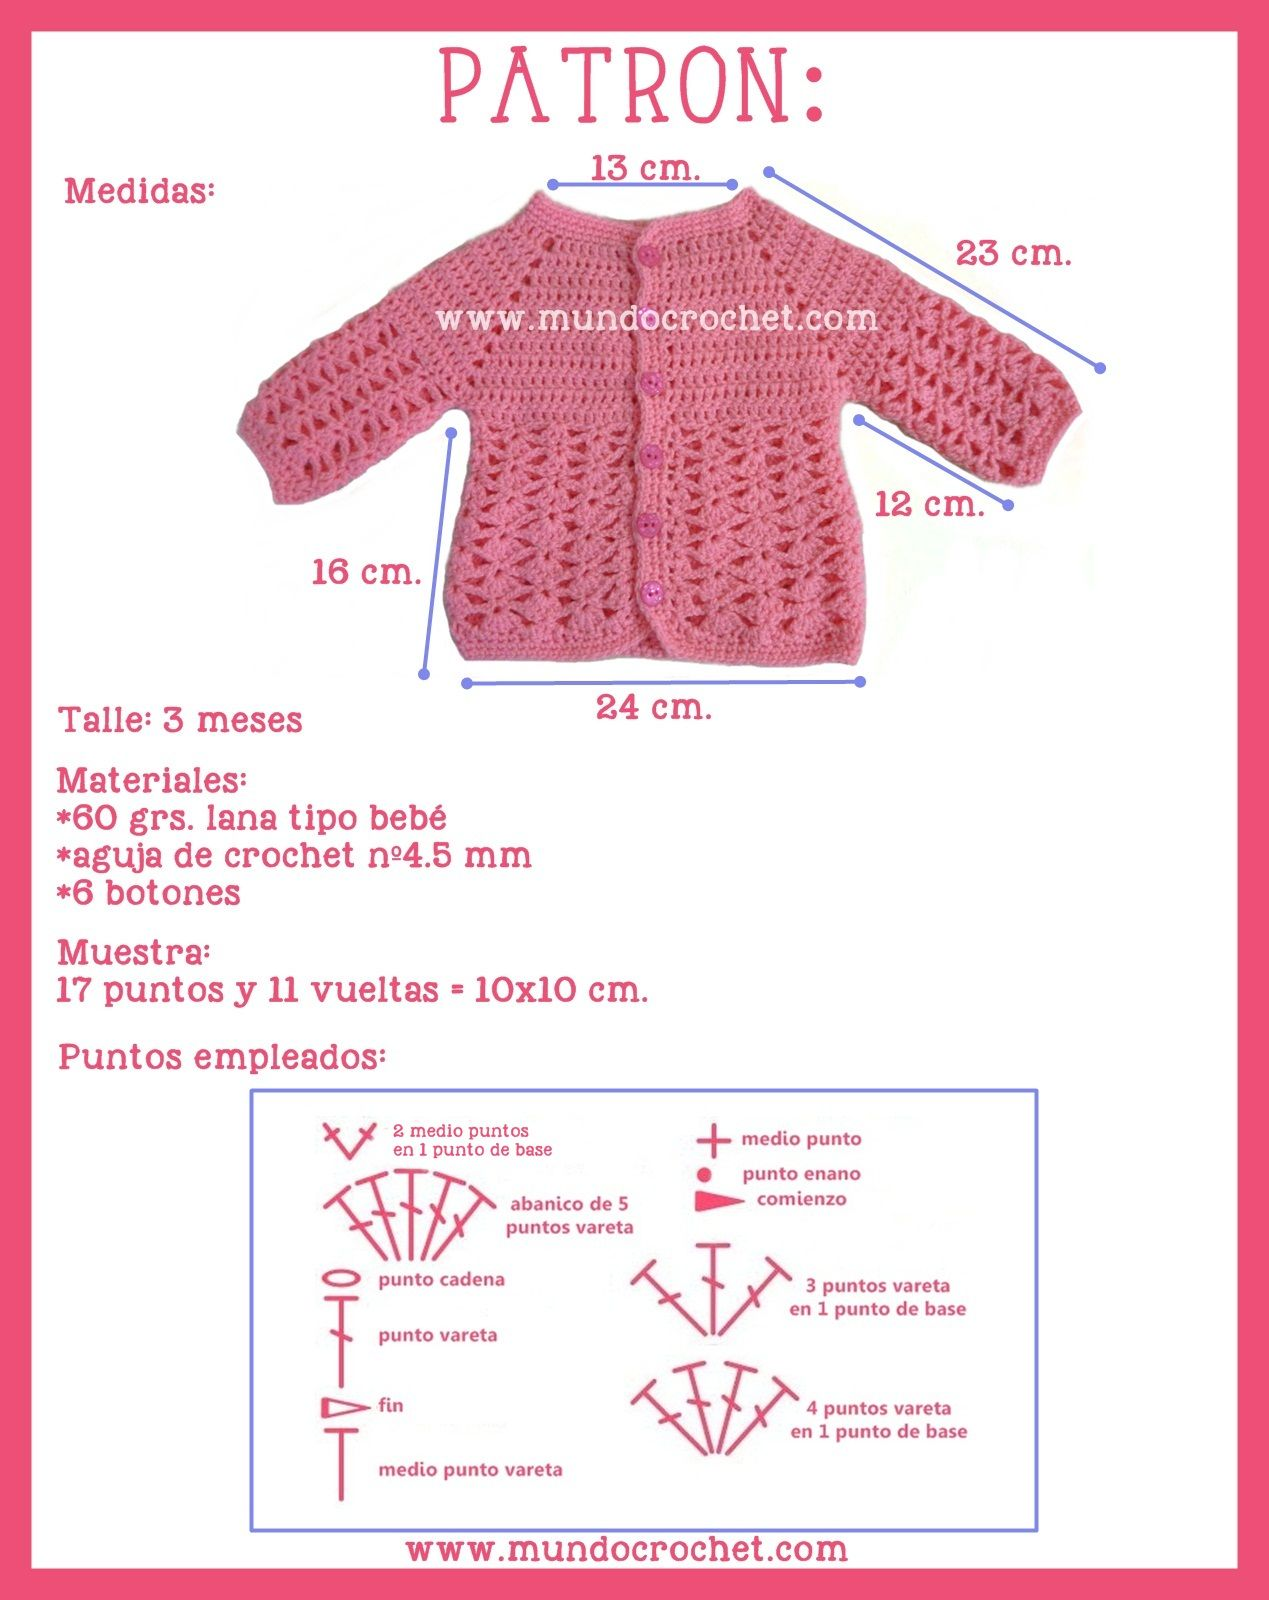 Pin by Anh Thy Vo on Ao | Pinterest | Crochet baby, Crochet and ...